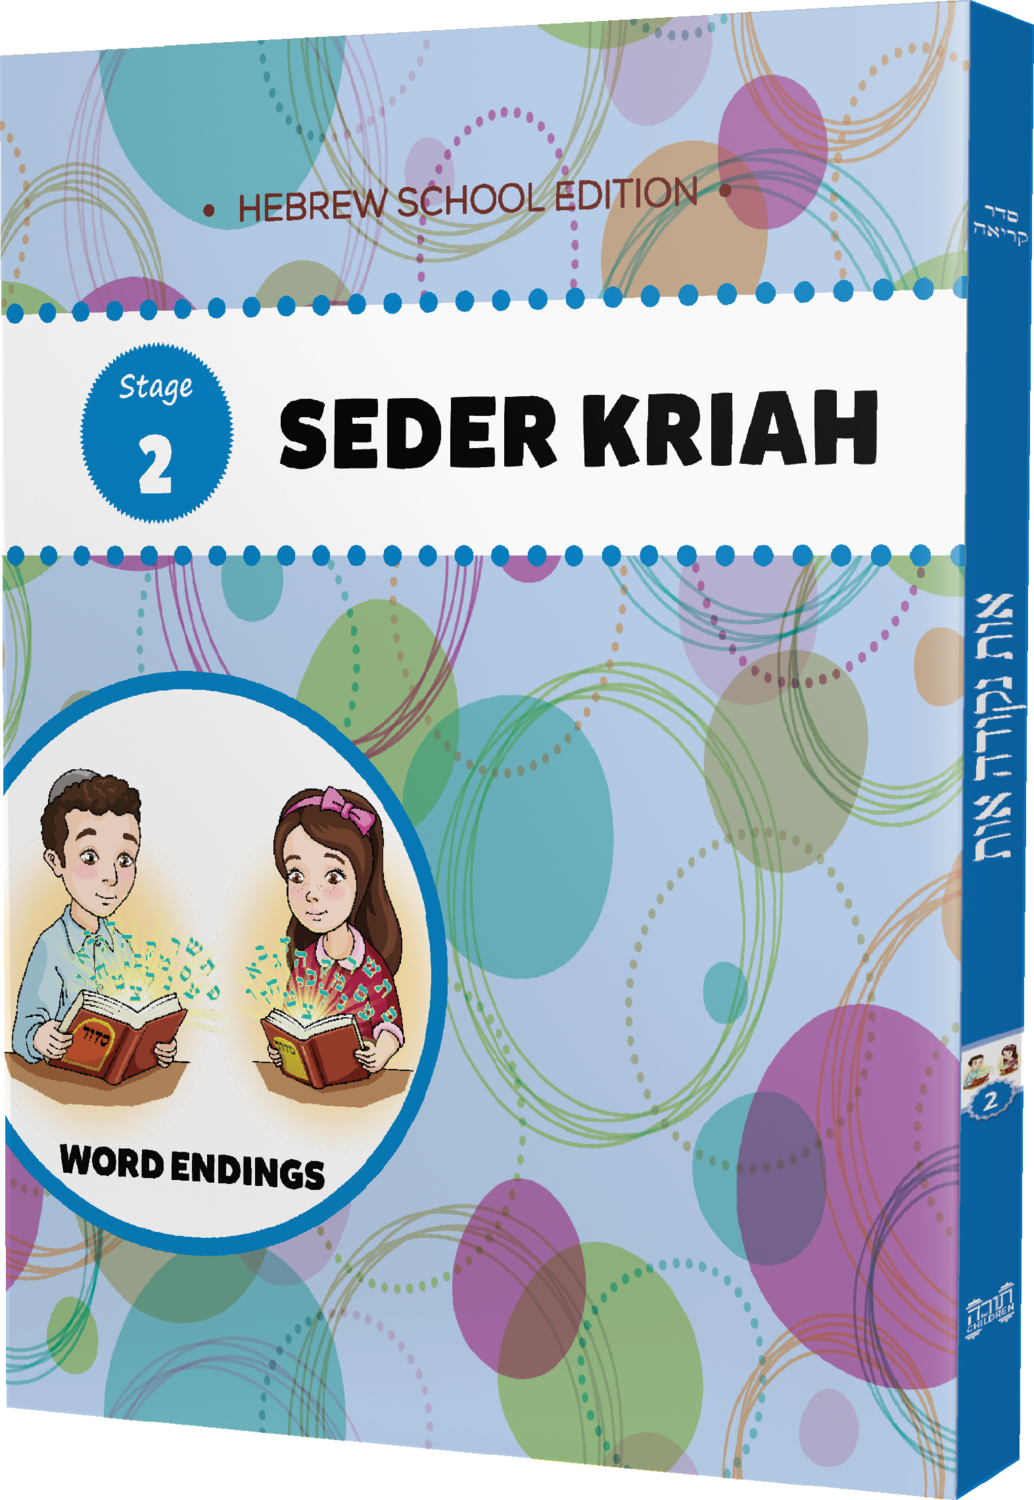 Seder Kriah Hebrew School Edition Stage 2 WORD ENDINGS